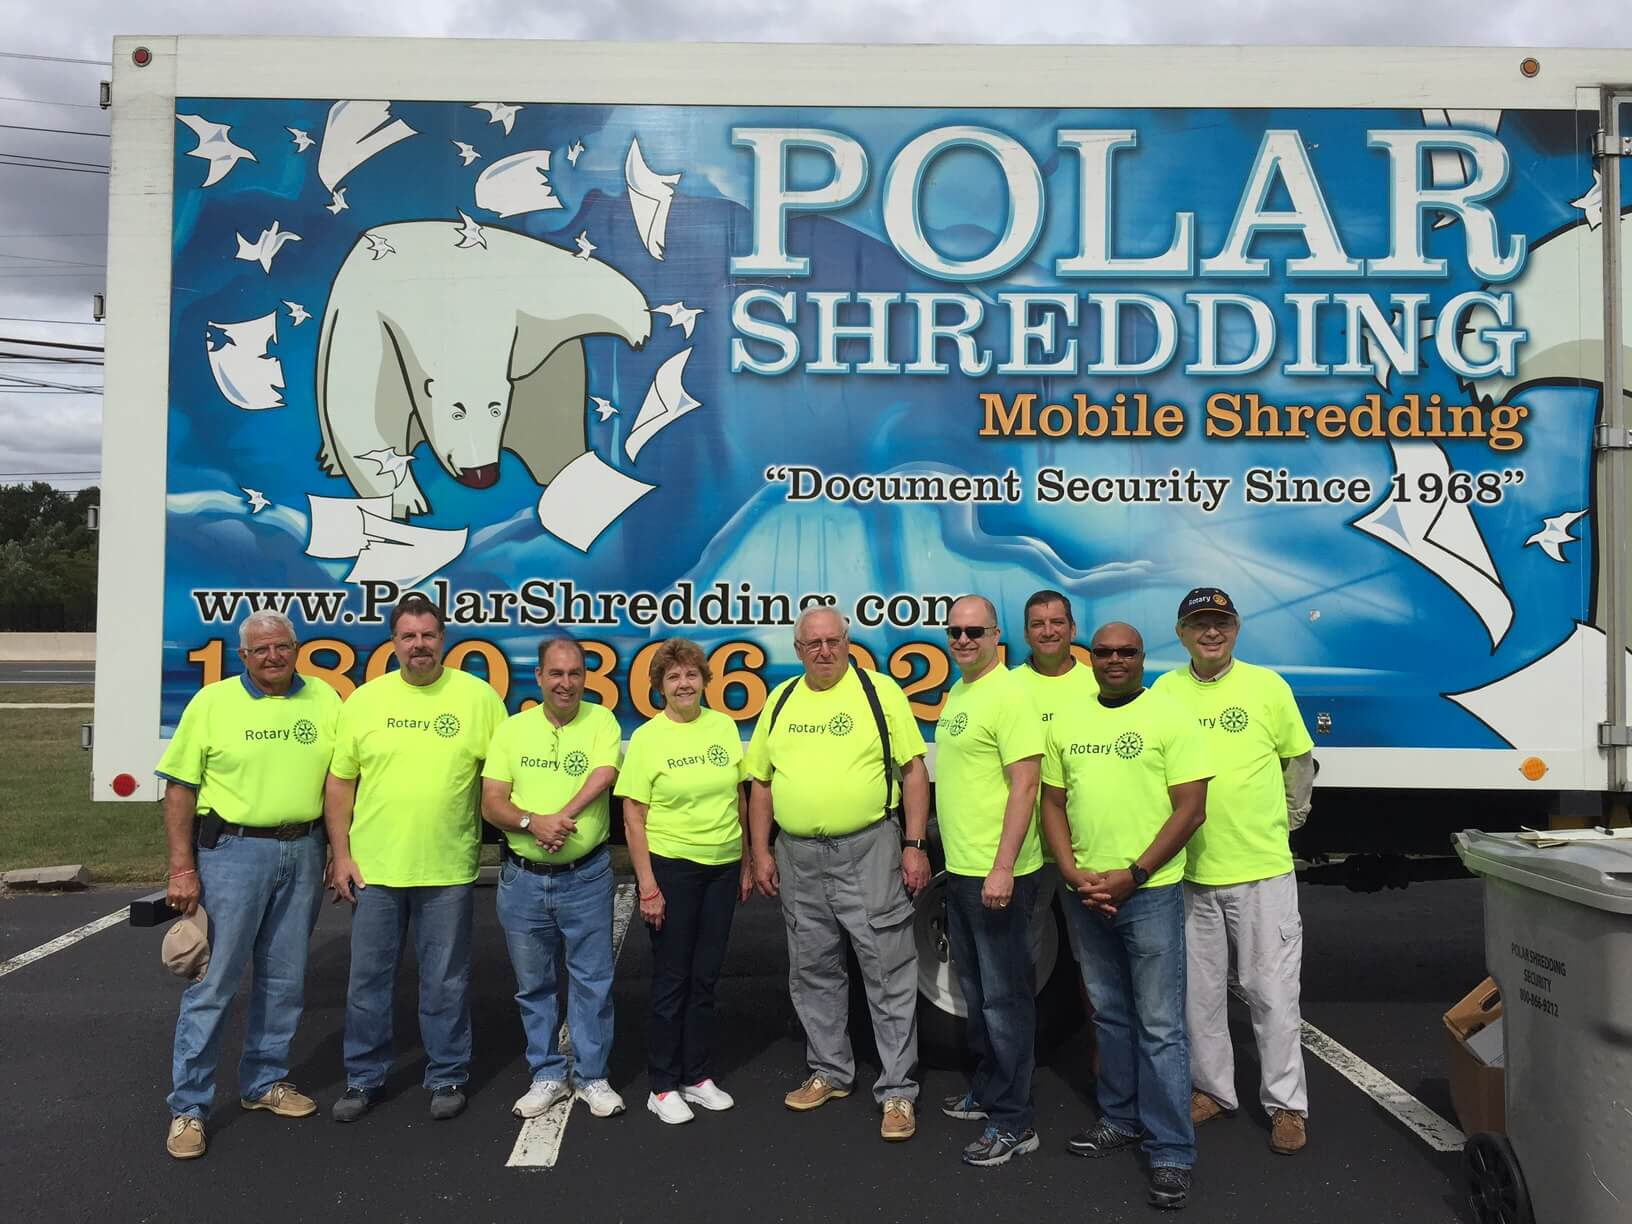 Rotary club using Polar Shredding at a community shred event